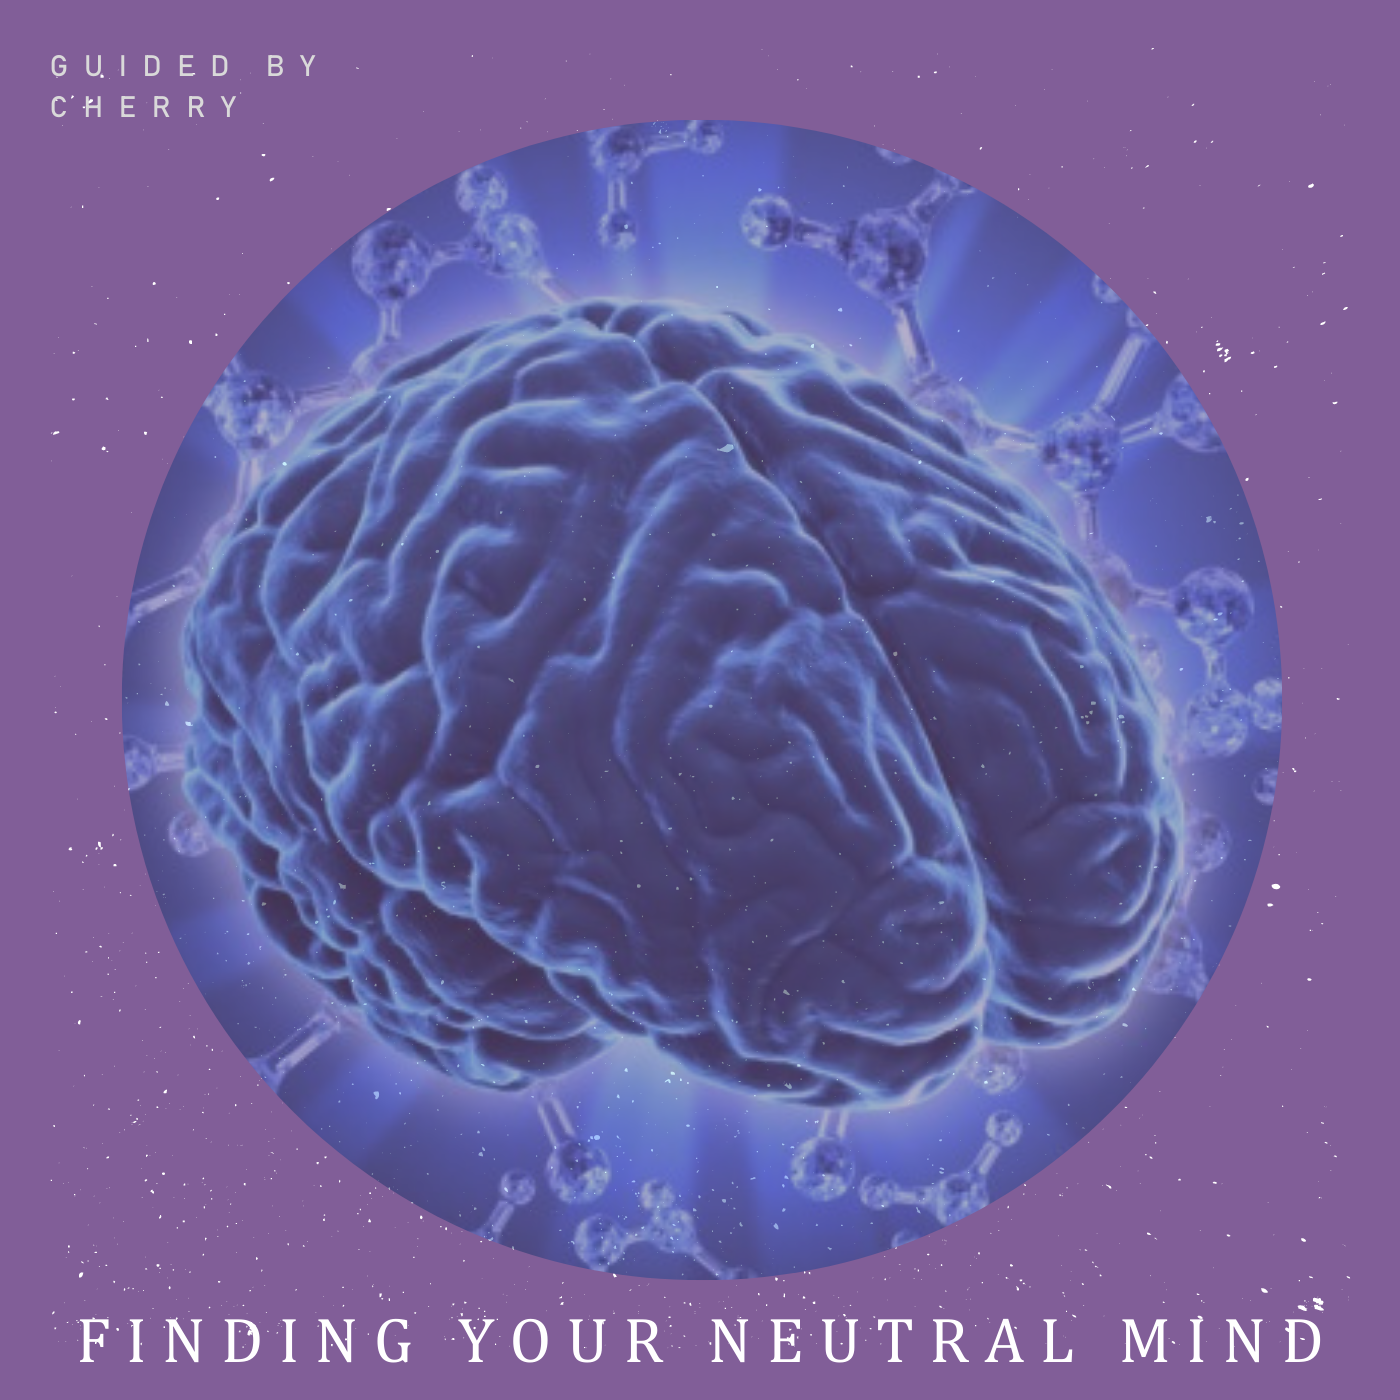 Finding your Neutral Mind